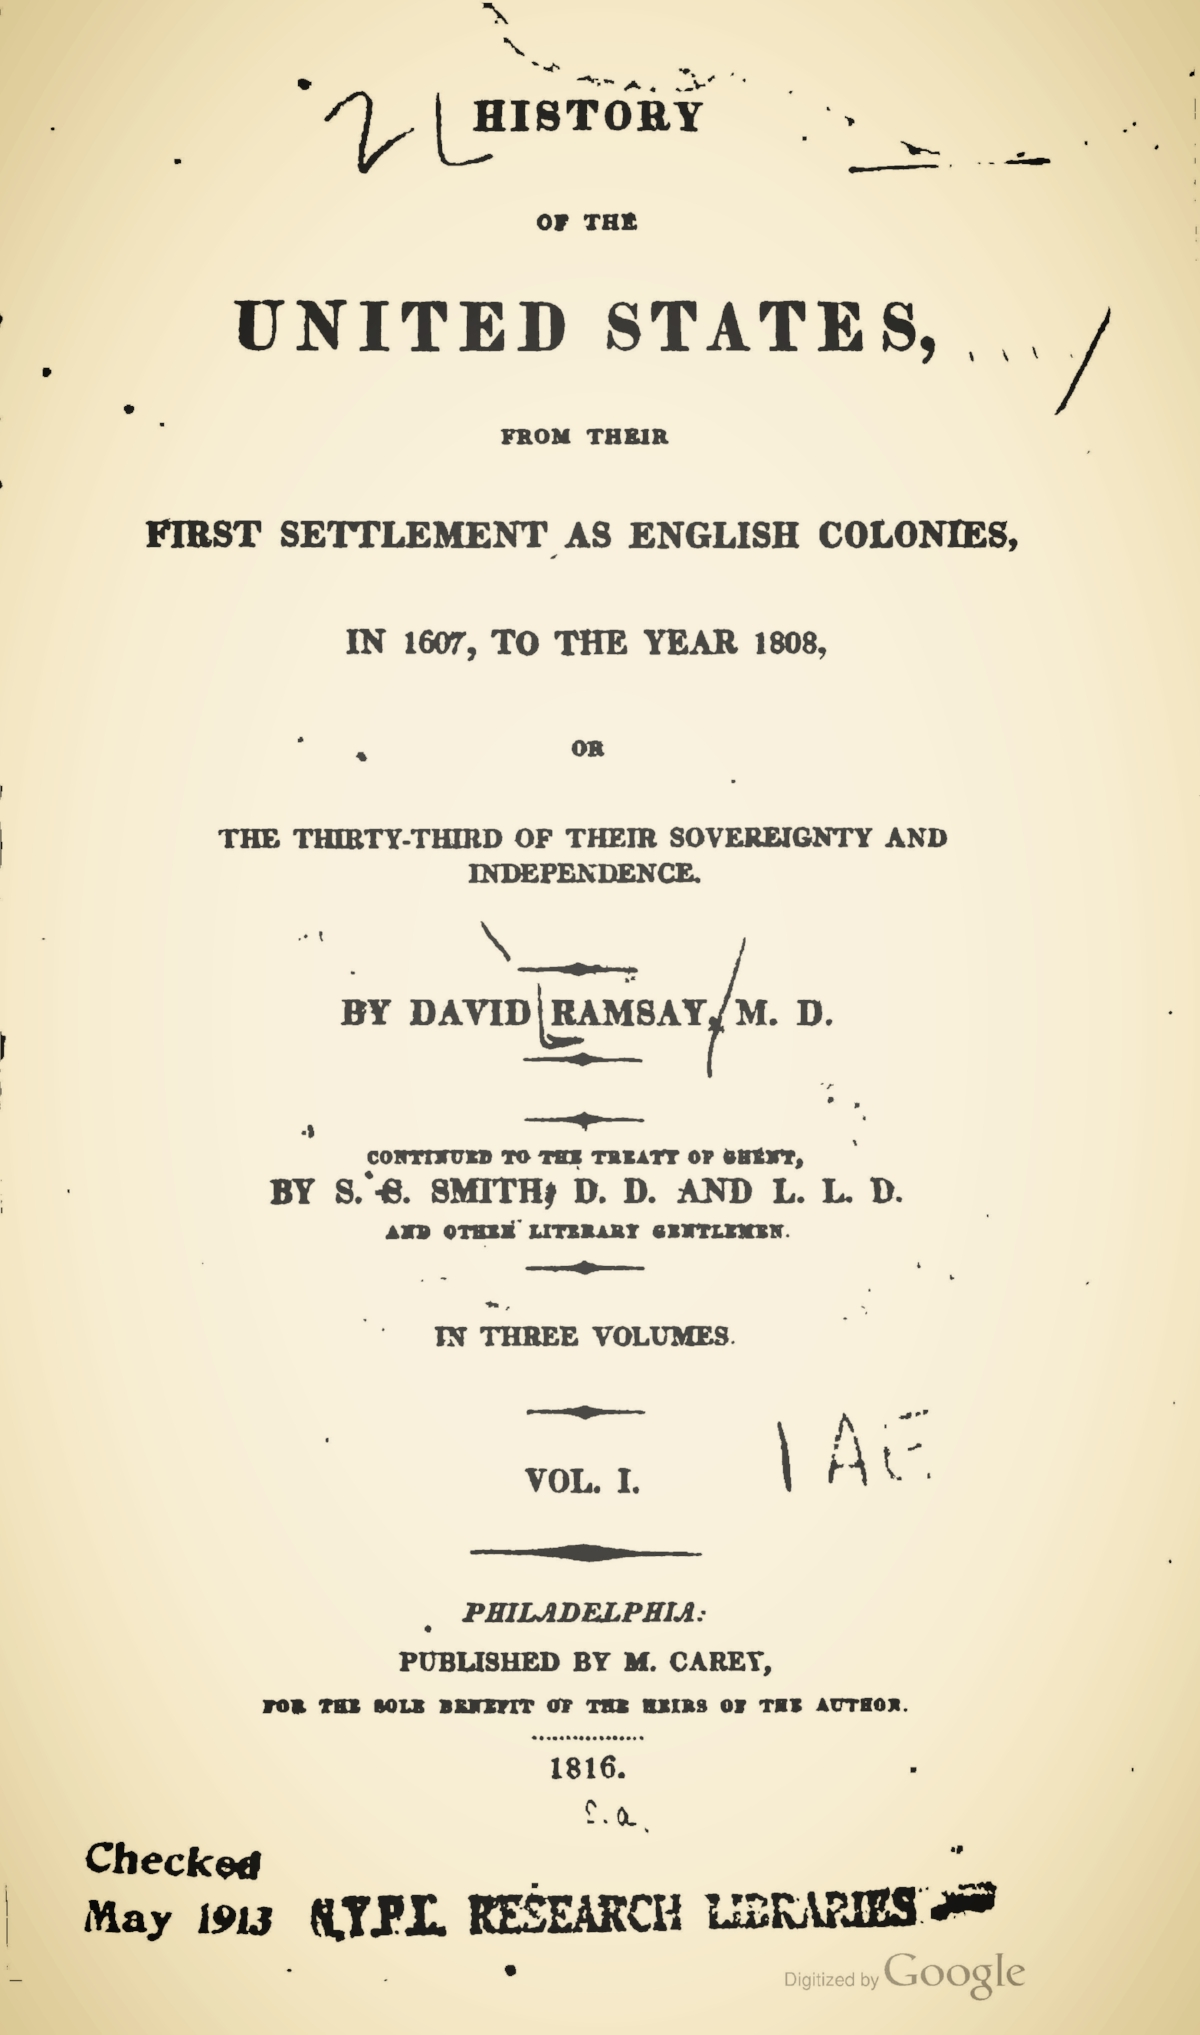 Ramsay, David, History of the United States, Vol. 1 Title Page.jpg